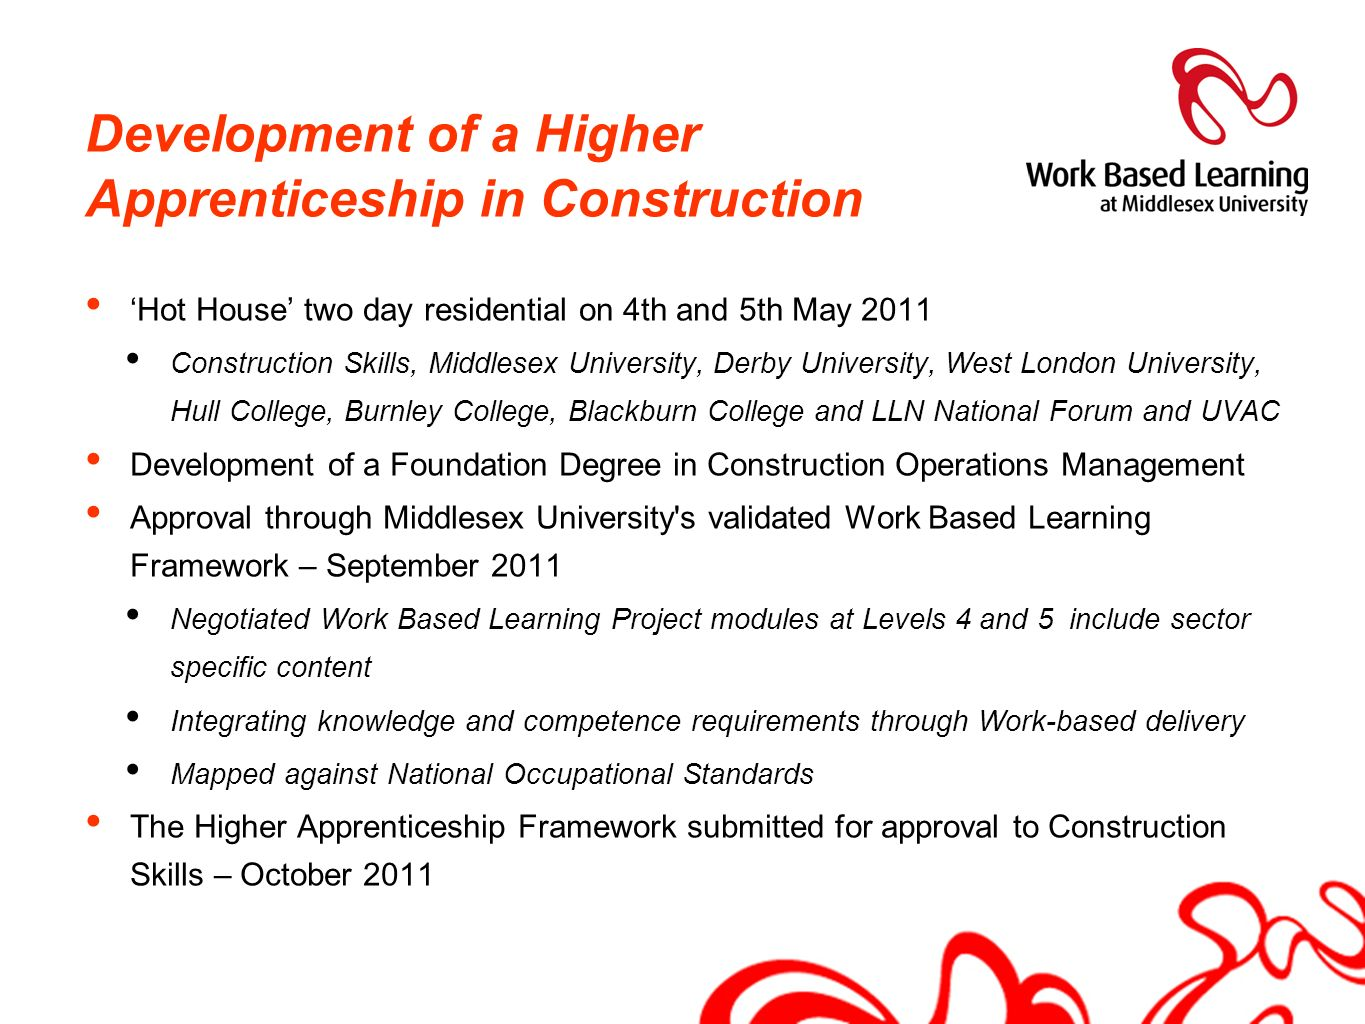 Development of a Higher Apprenticeship in Construction